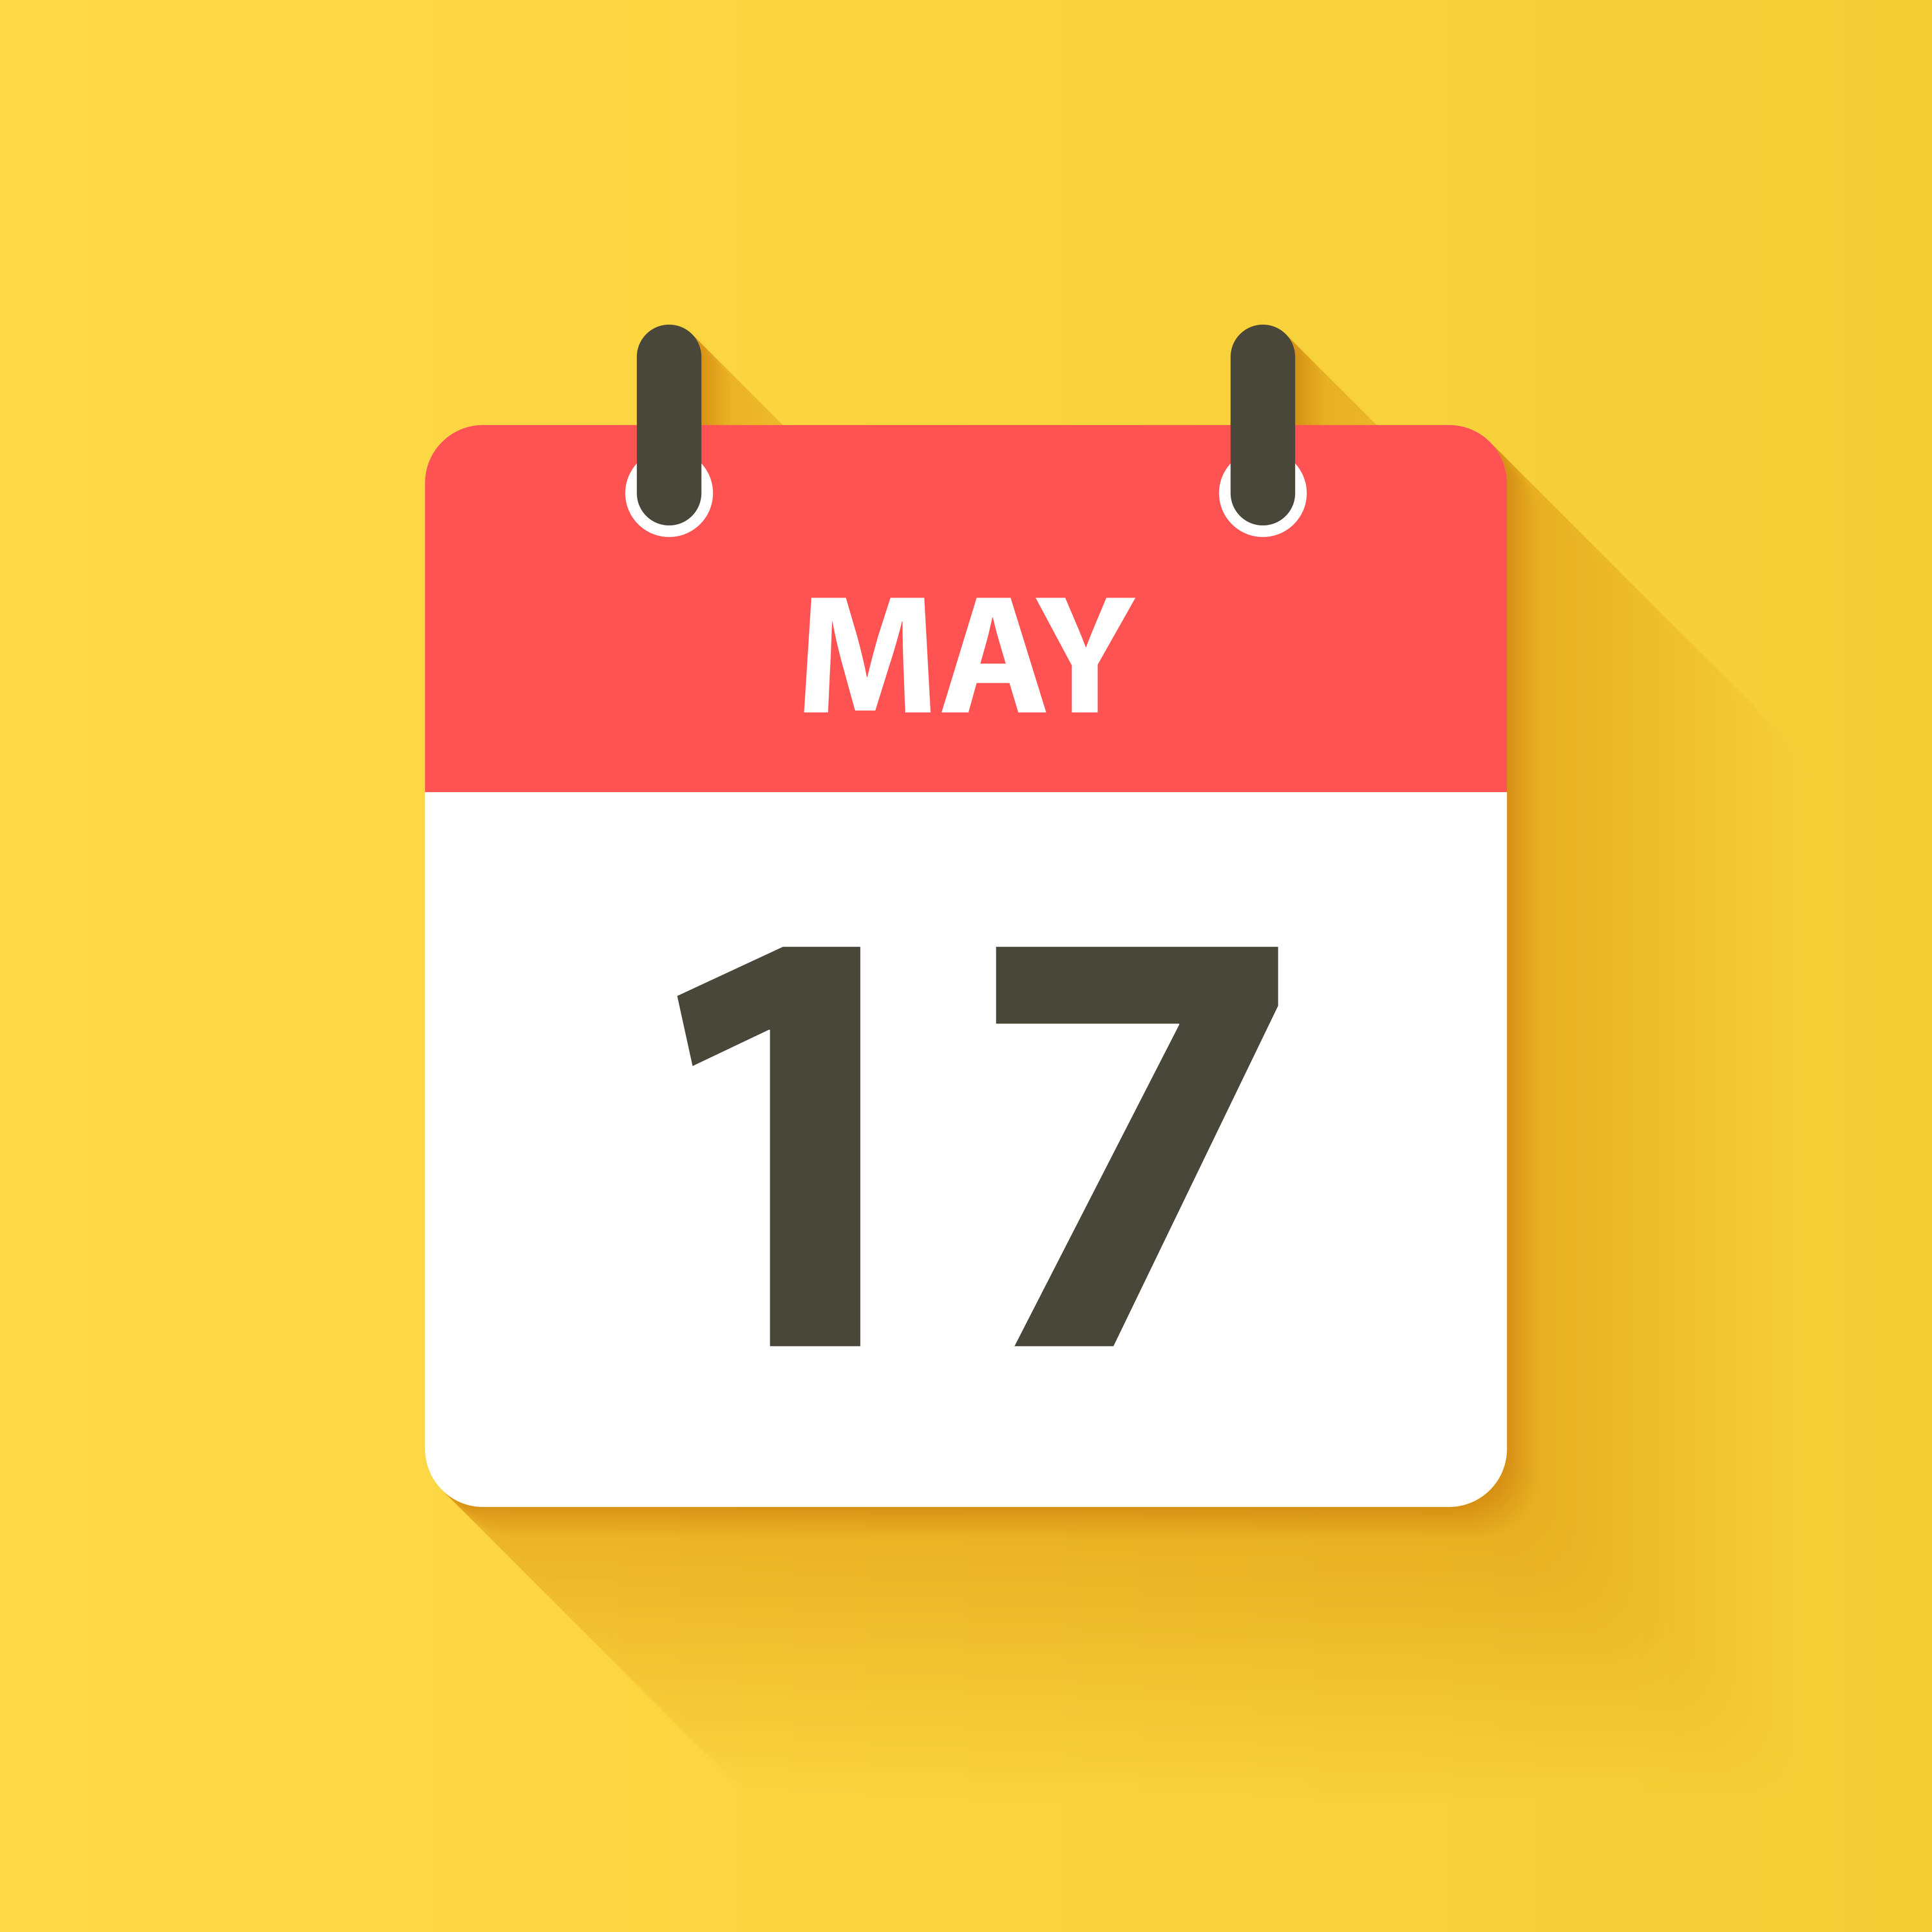 Calendar page showing May 17